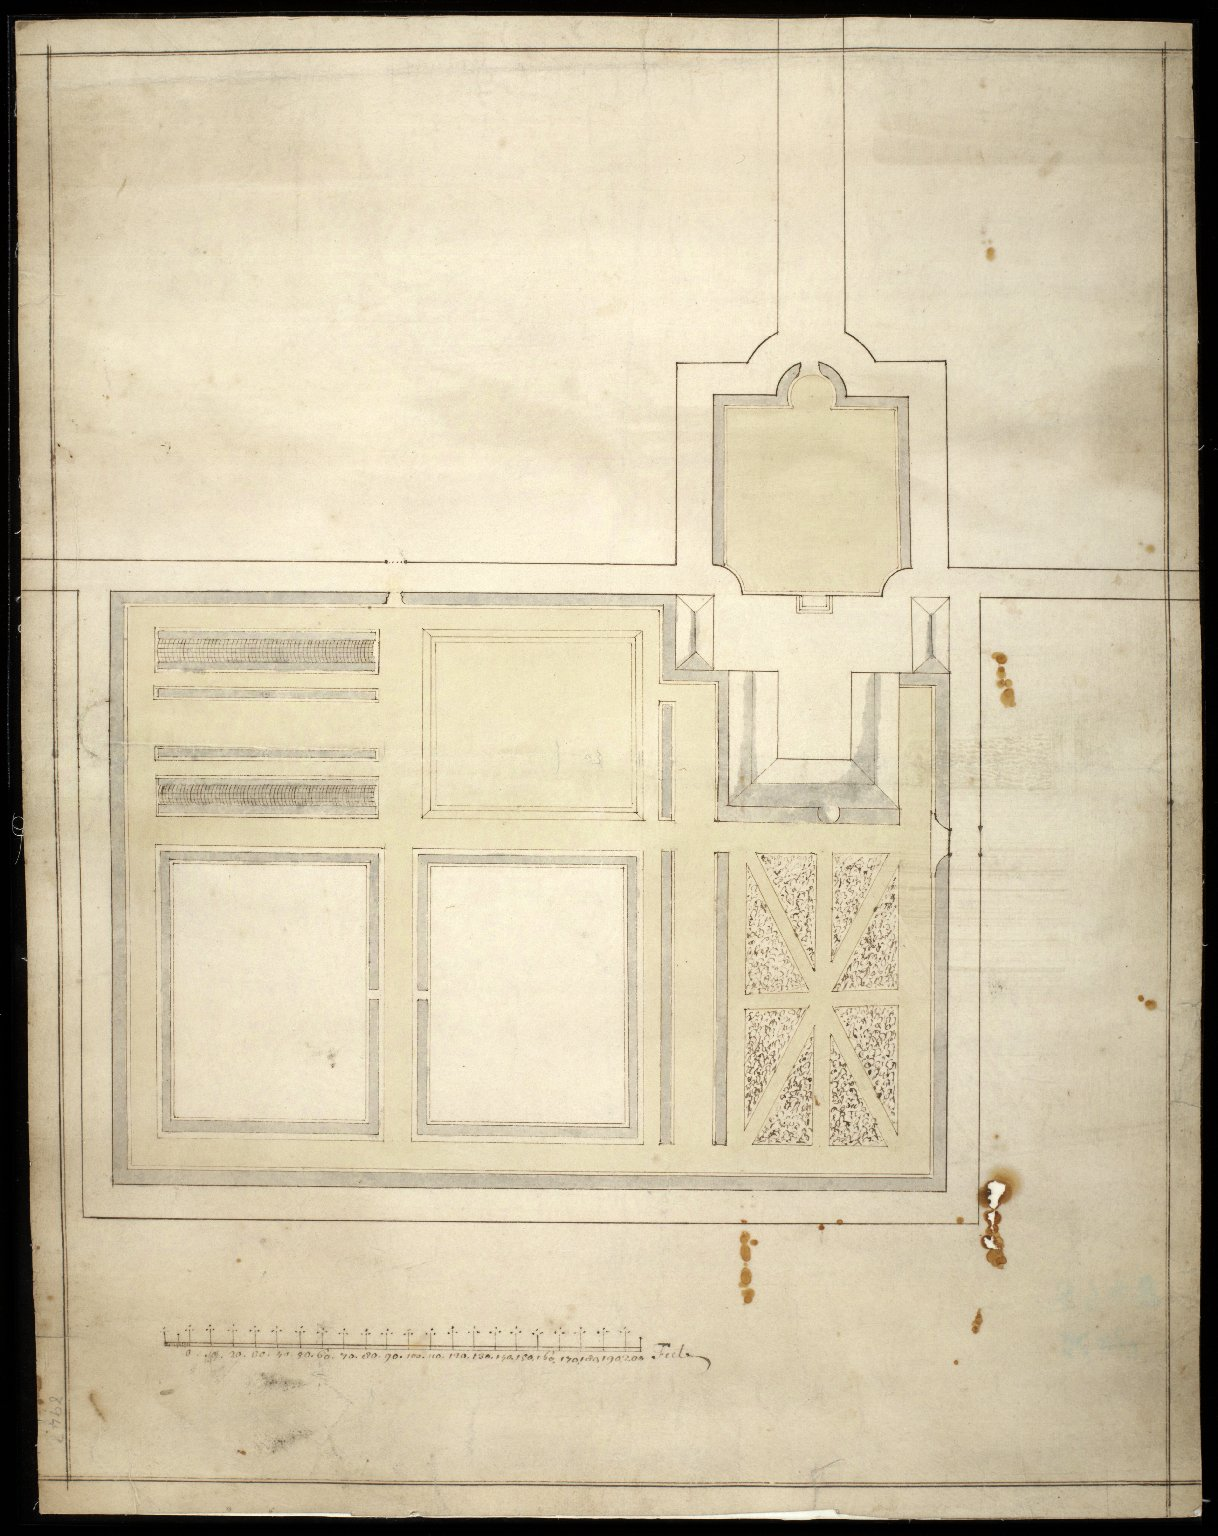 [Plan of the gardens at Castle Grant] [1 of 1]